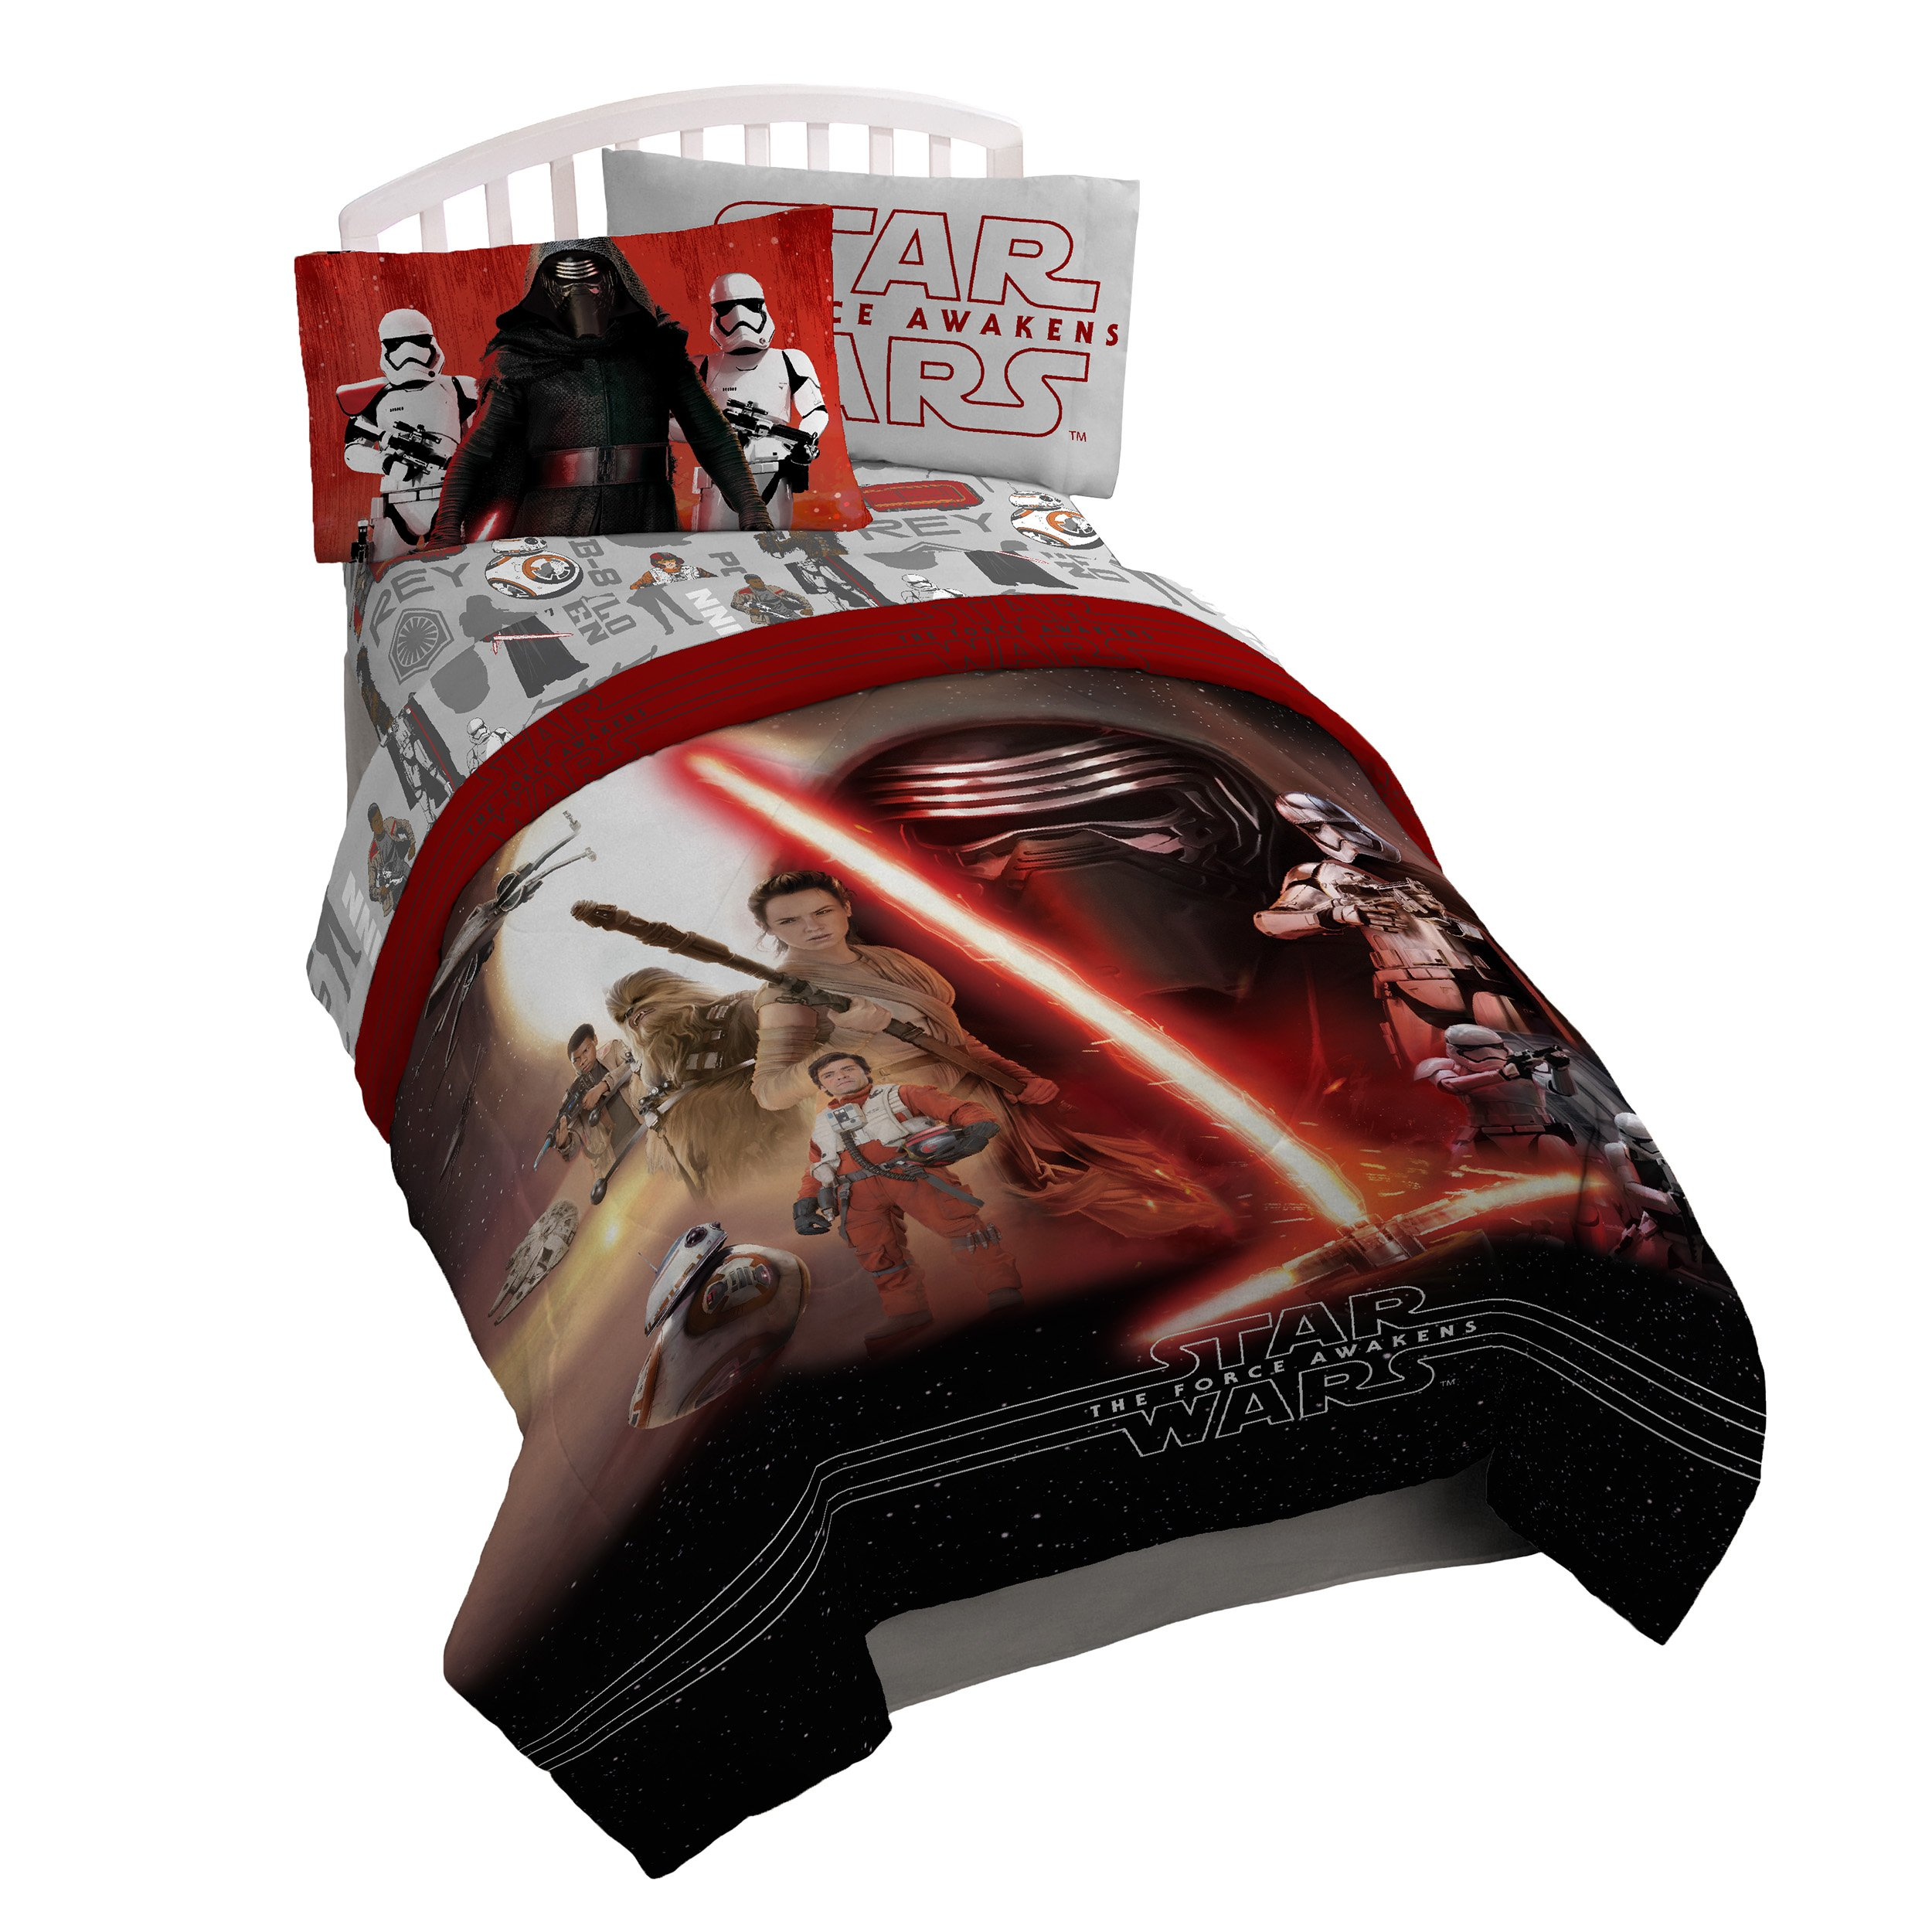 Star Wars Ep7 Force Awakens Twin/Full Reversible Comforter by Jay Franco